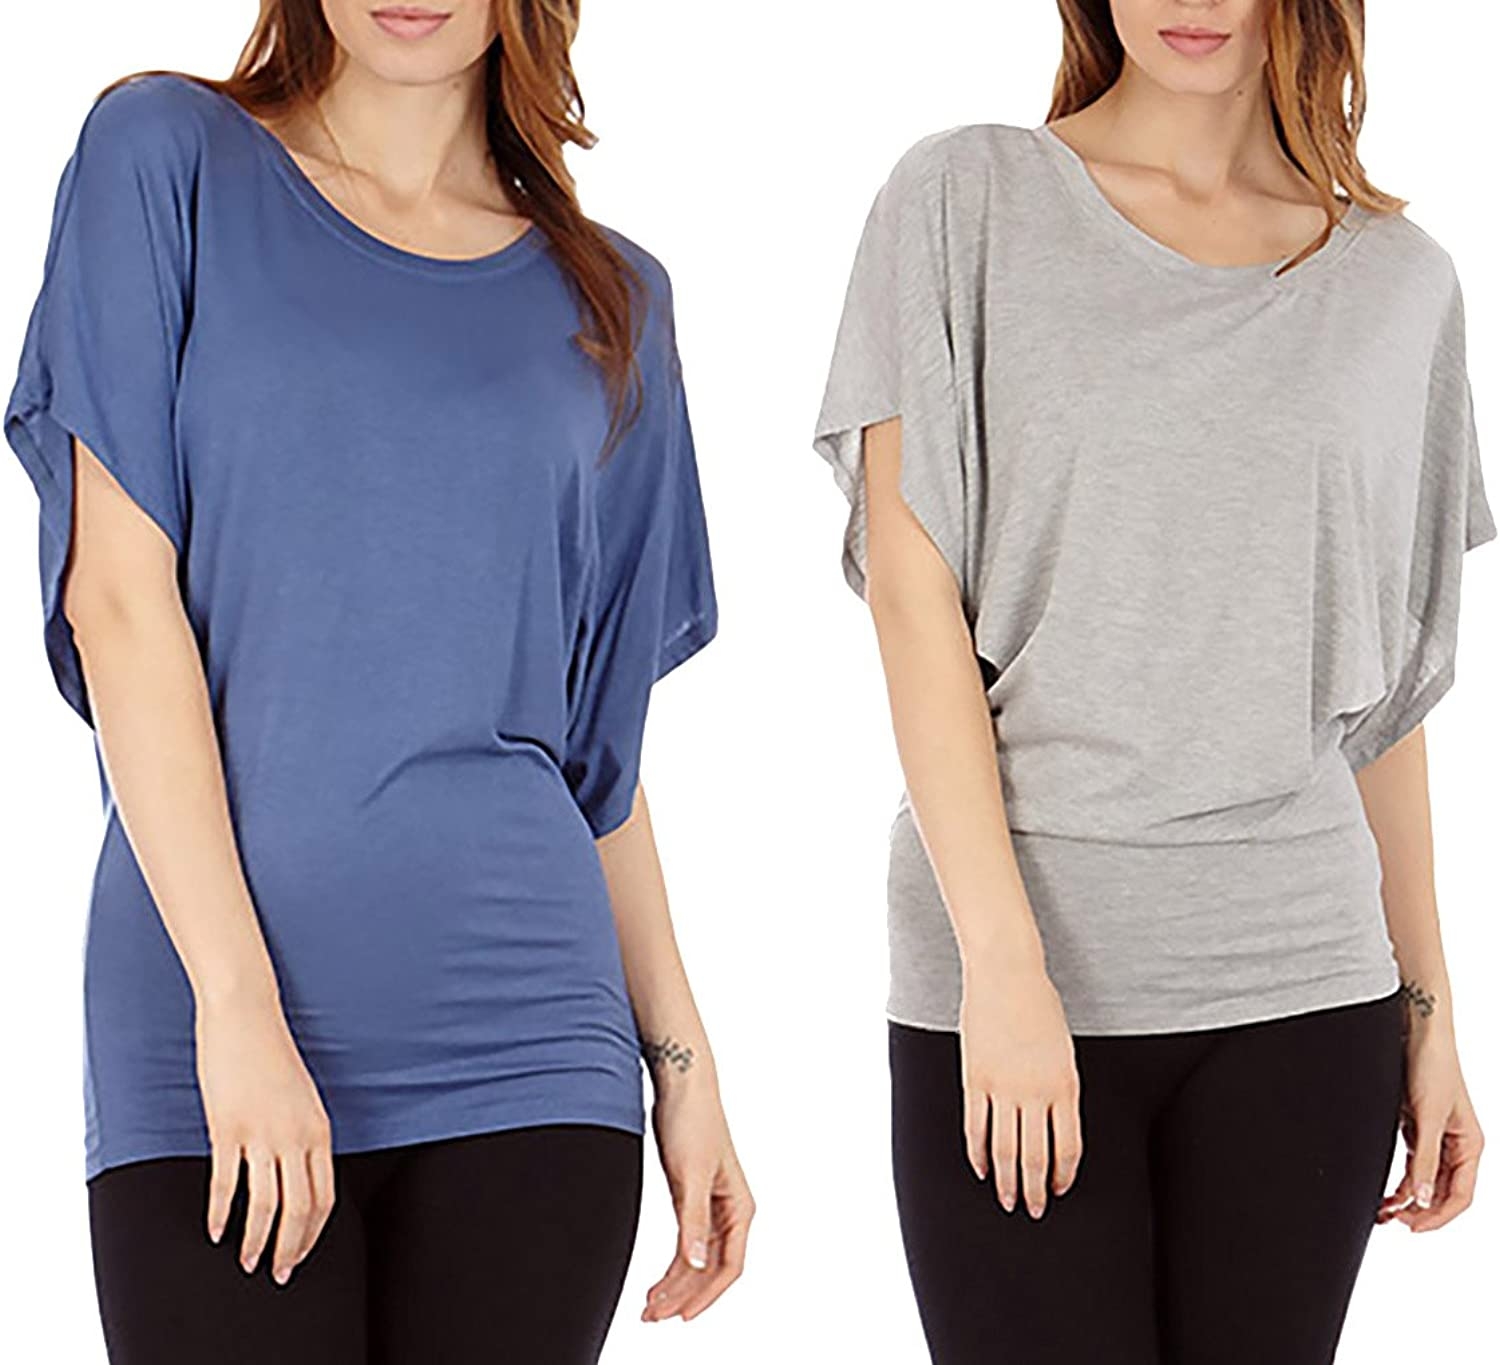 Dinamit Women's Batwing Sleeve Casual Tunic Top